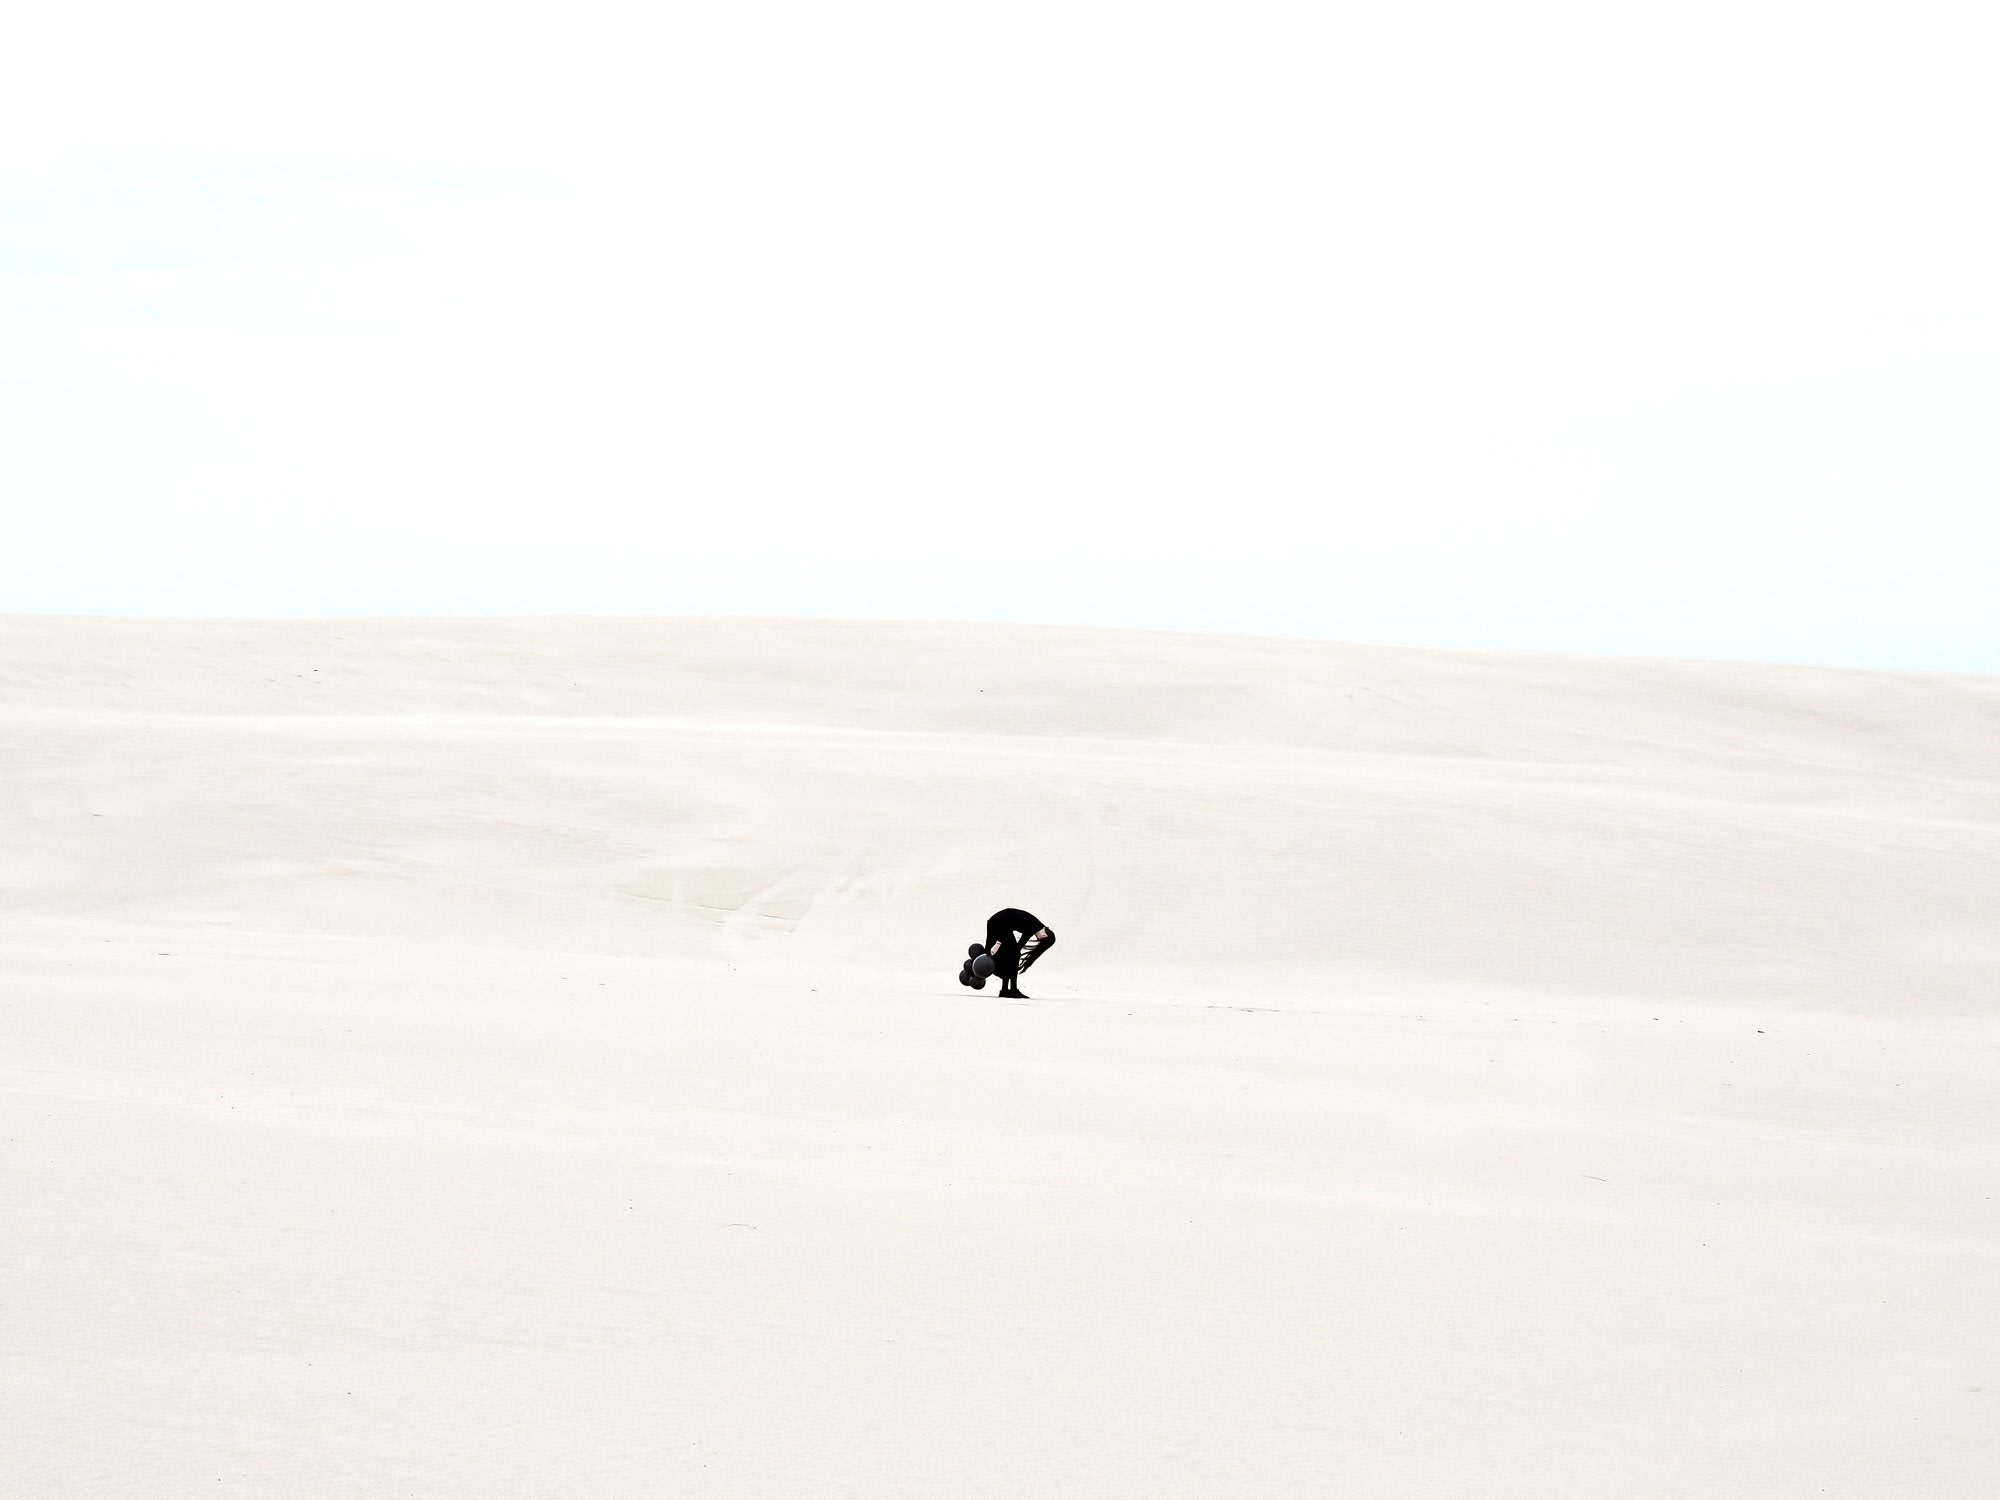 SAND DUNES AND BLACK BALLOONS